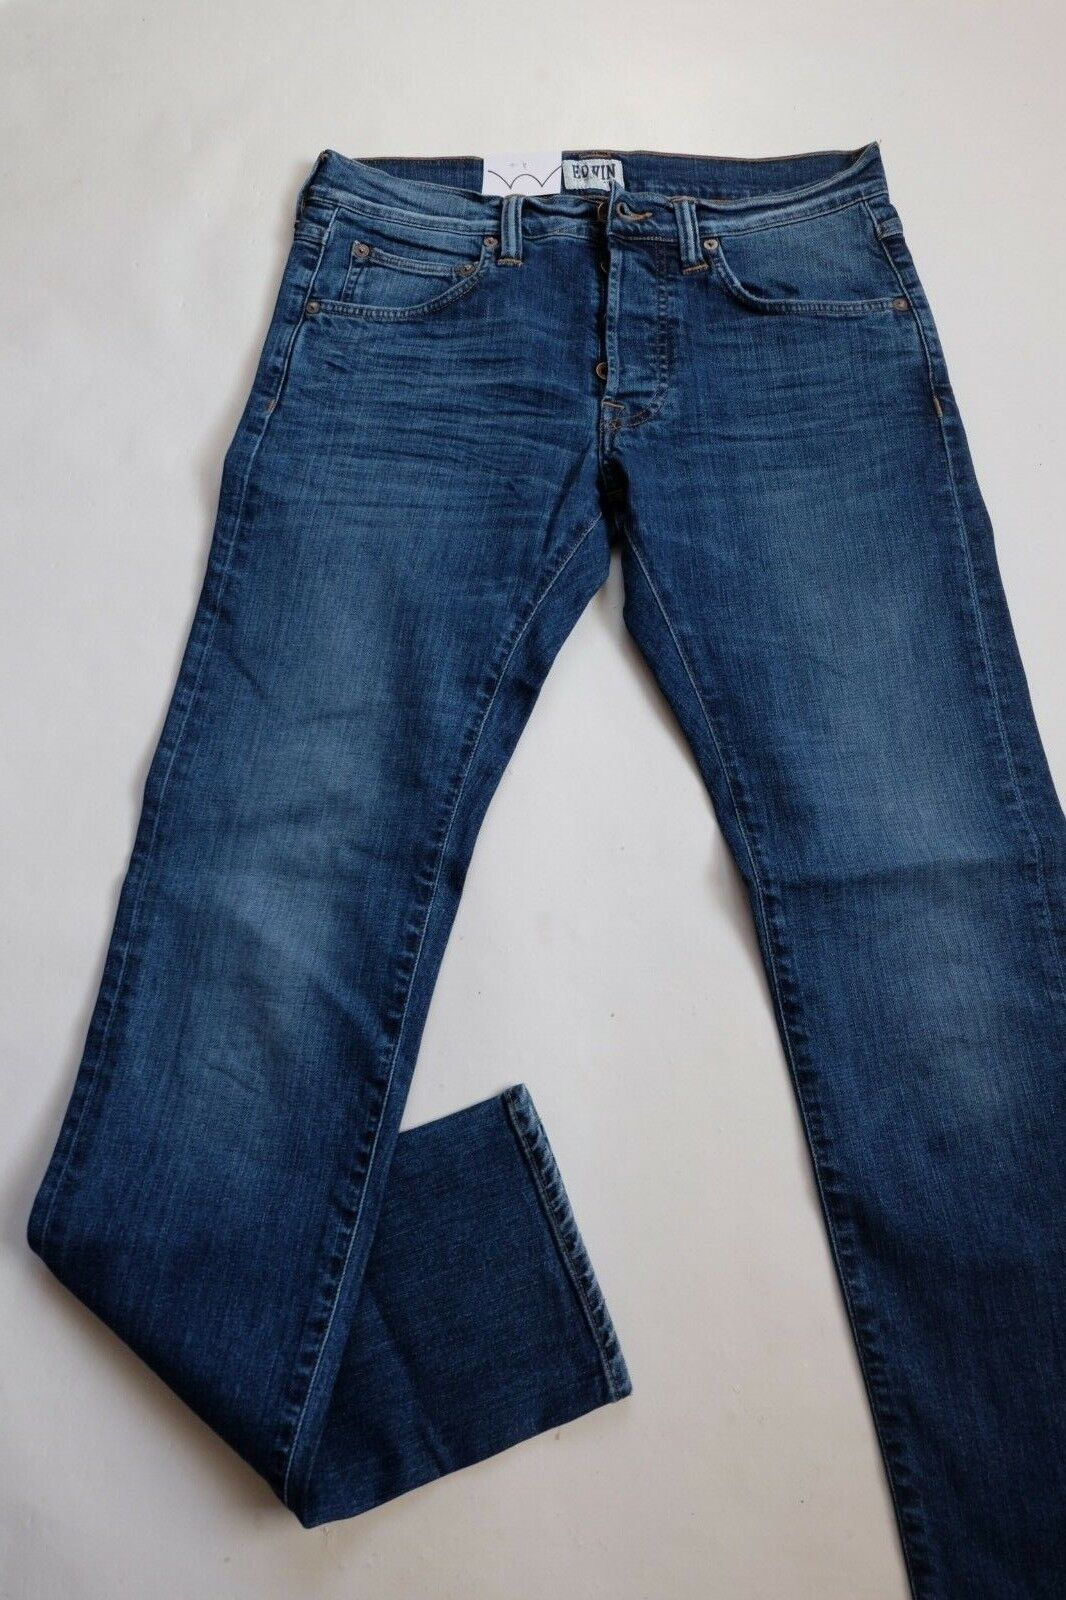 EDWIN JEANS MAN ED 55 RELAXED TAPERED (CS Night bluee Mid Trip Used) W30 L32